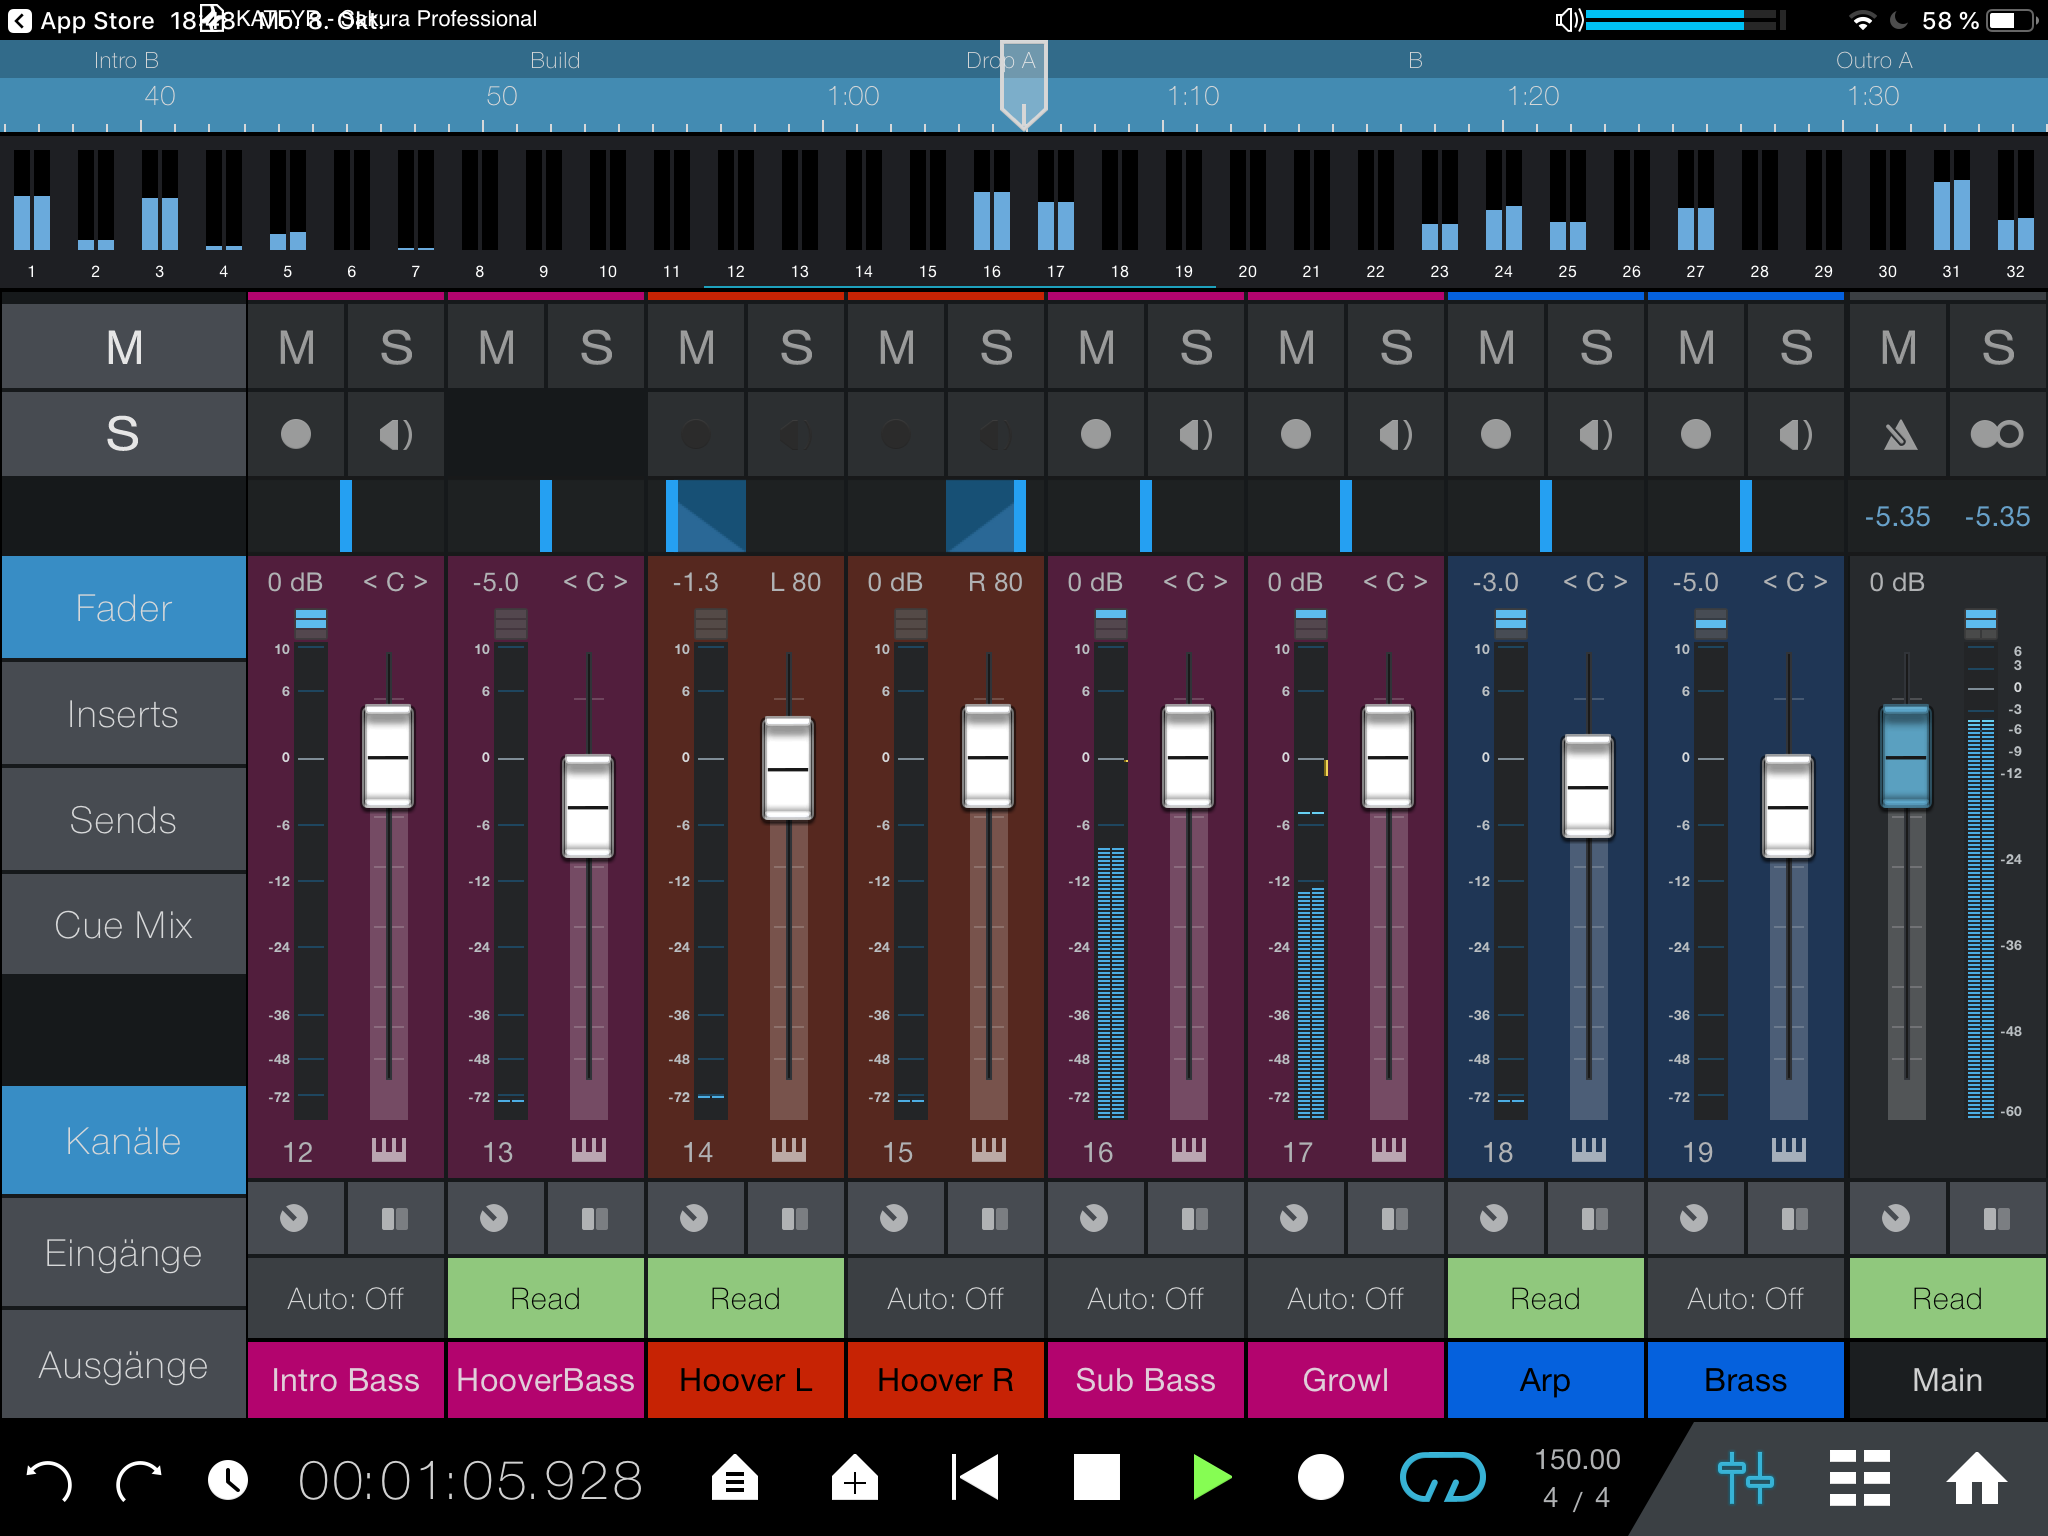 Studio One Remote 1.4 Dark Theme